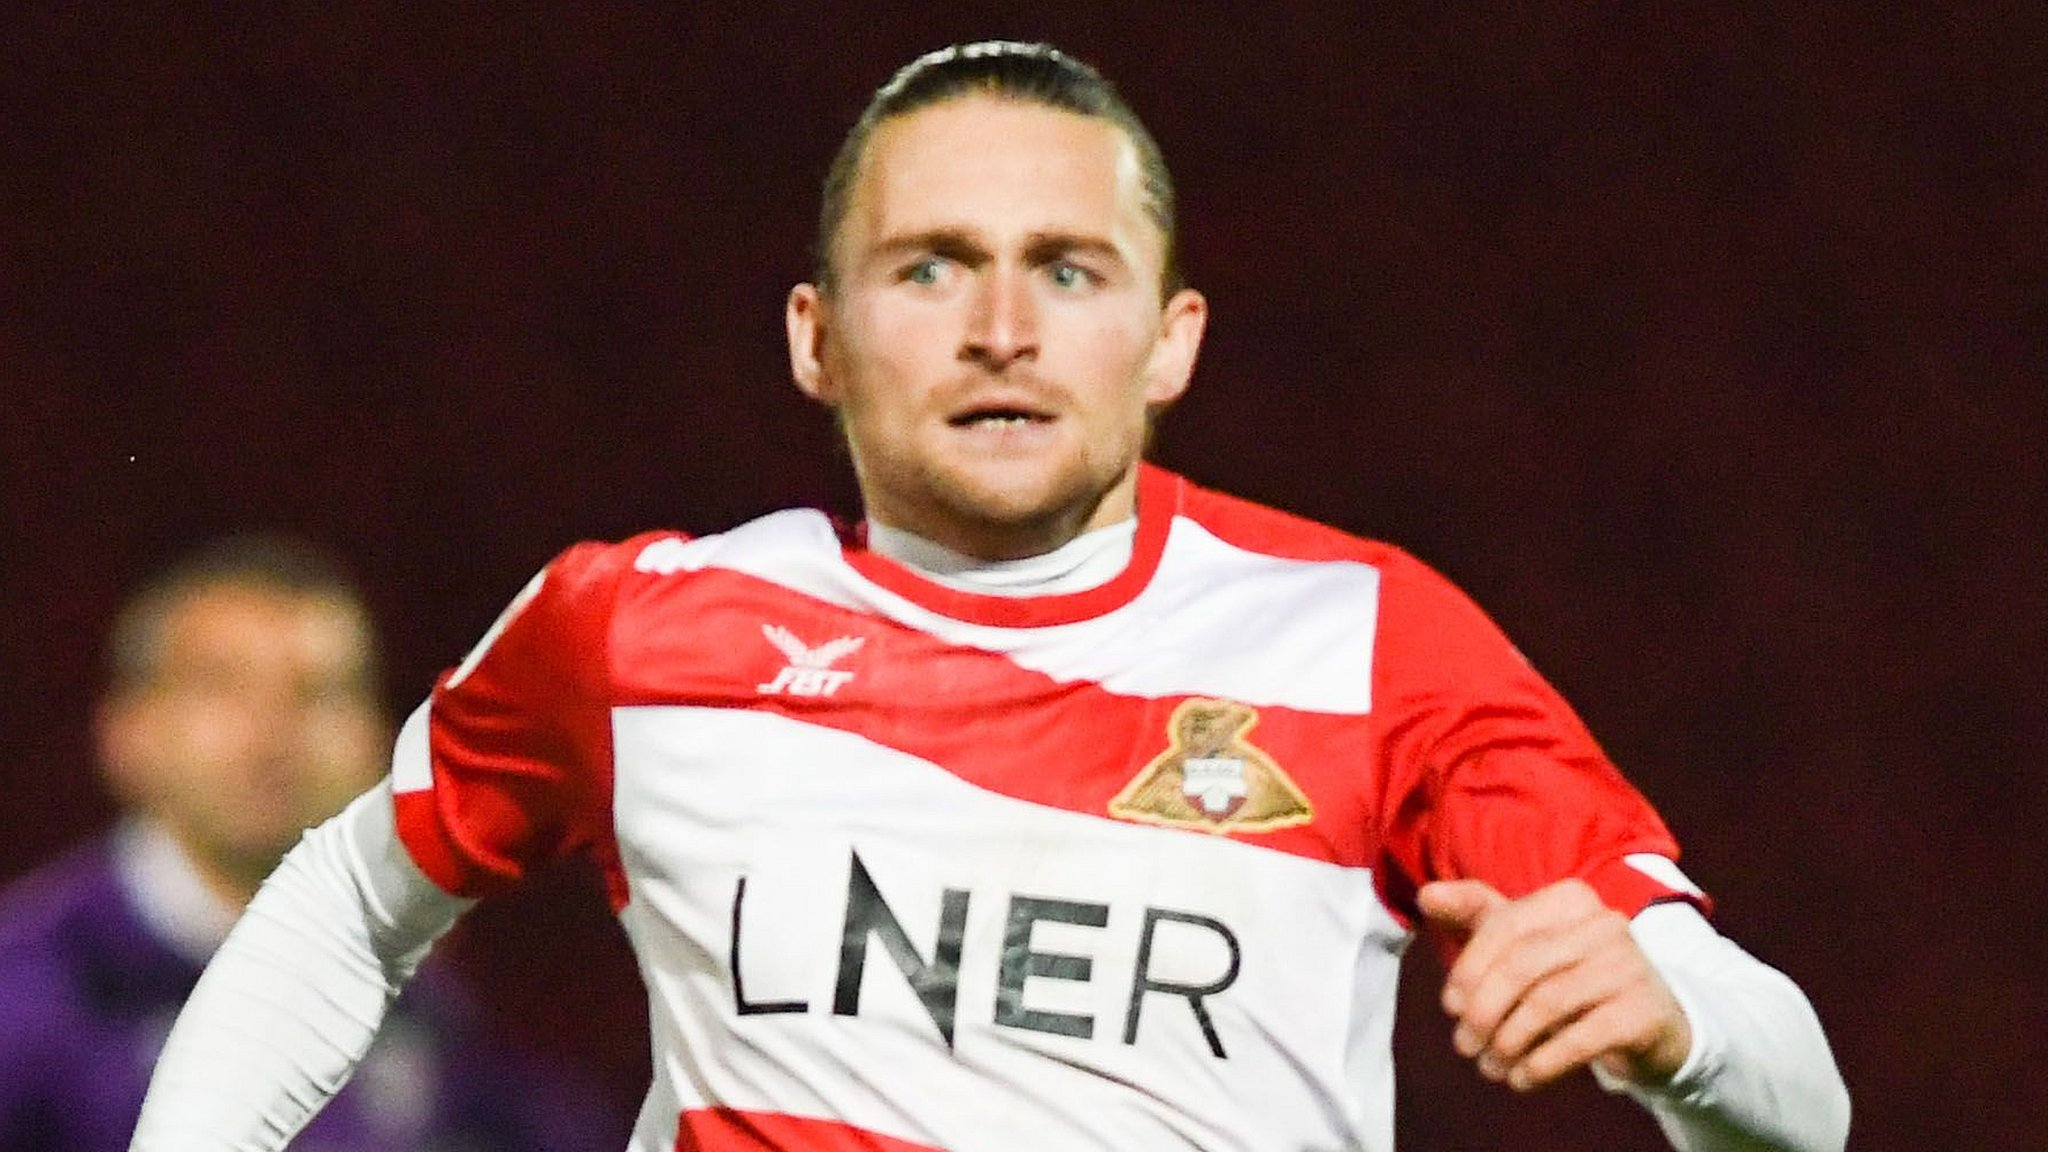 Doncaster Rovers 7-0 Chorley: Alfie May scores four as Rover thrash non-league side